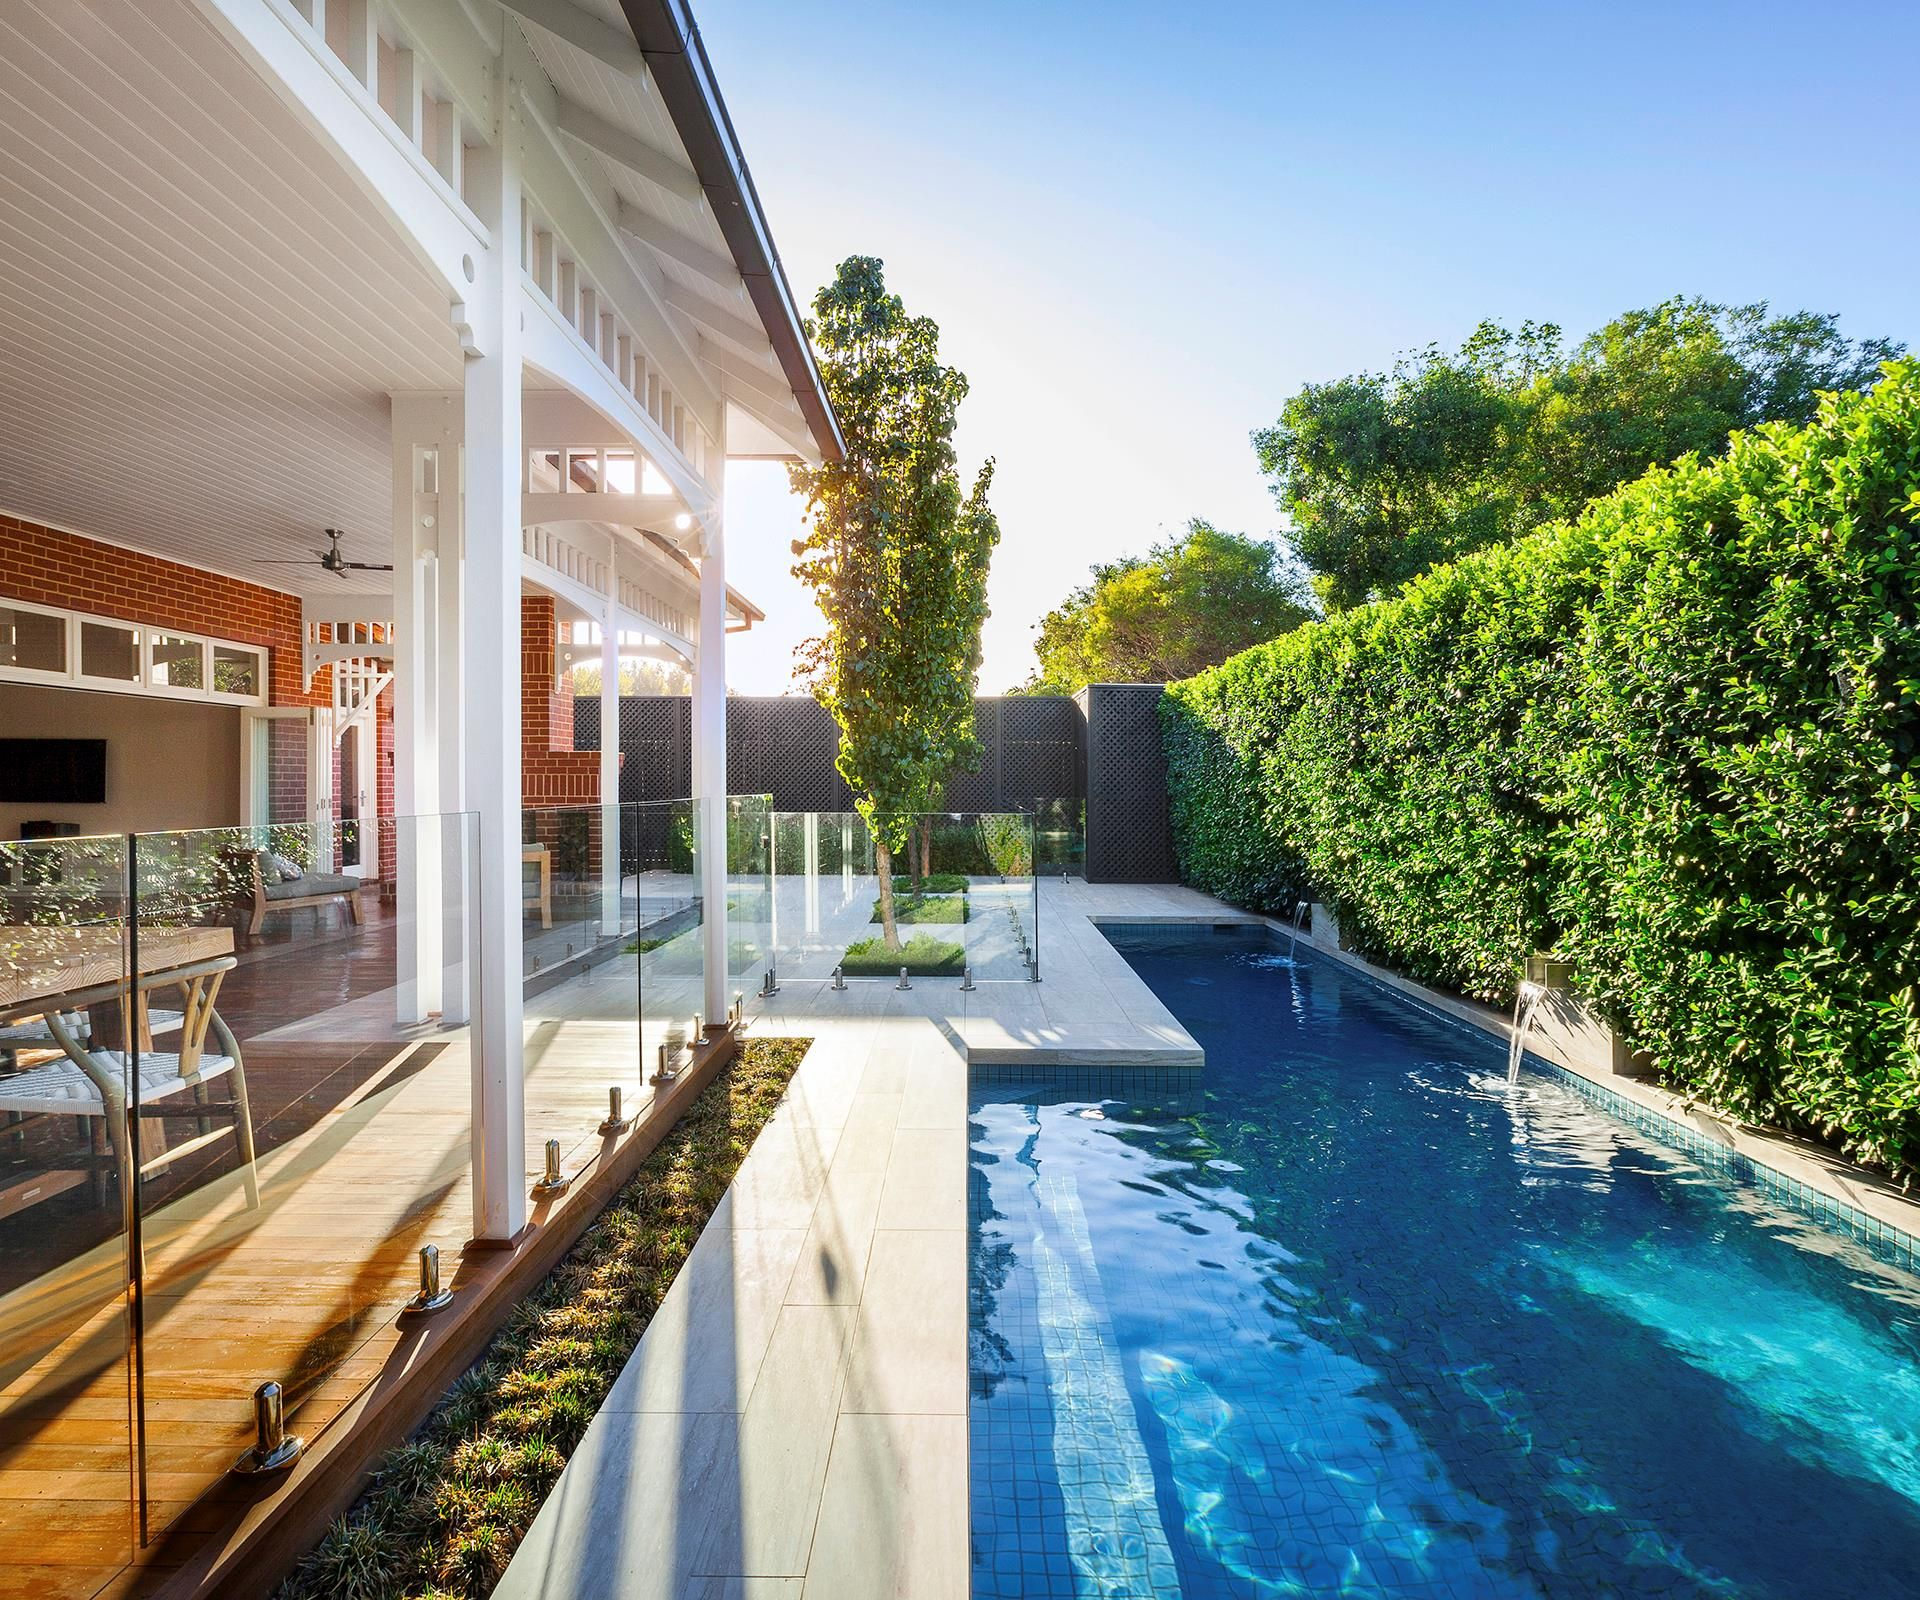 Cutting edge swimming pool design pool designs swimming for Pool and garden show perth